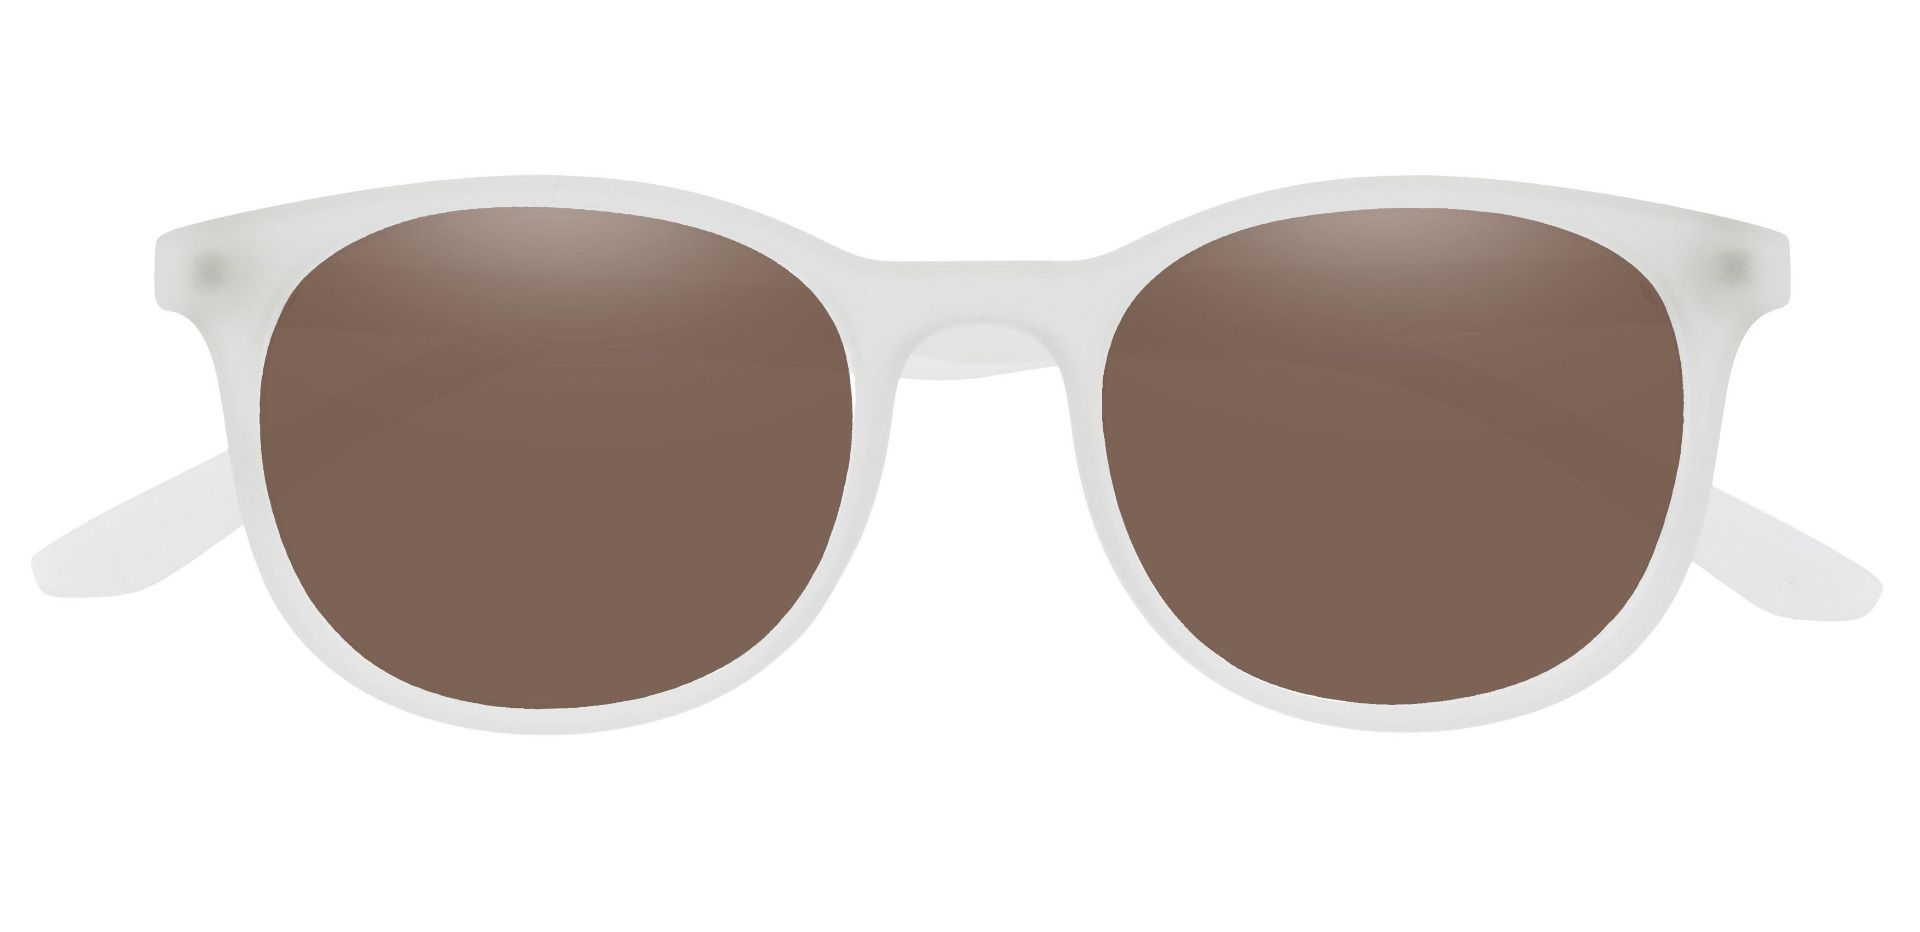 Pelham Oval Prescription Sunglasses - Clear Frame With Brown Lenses